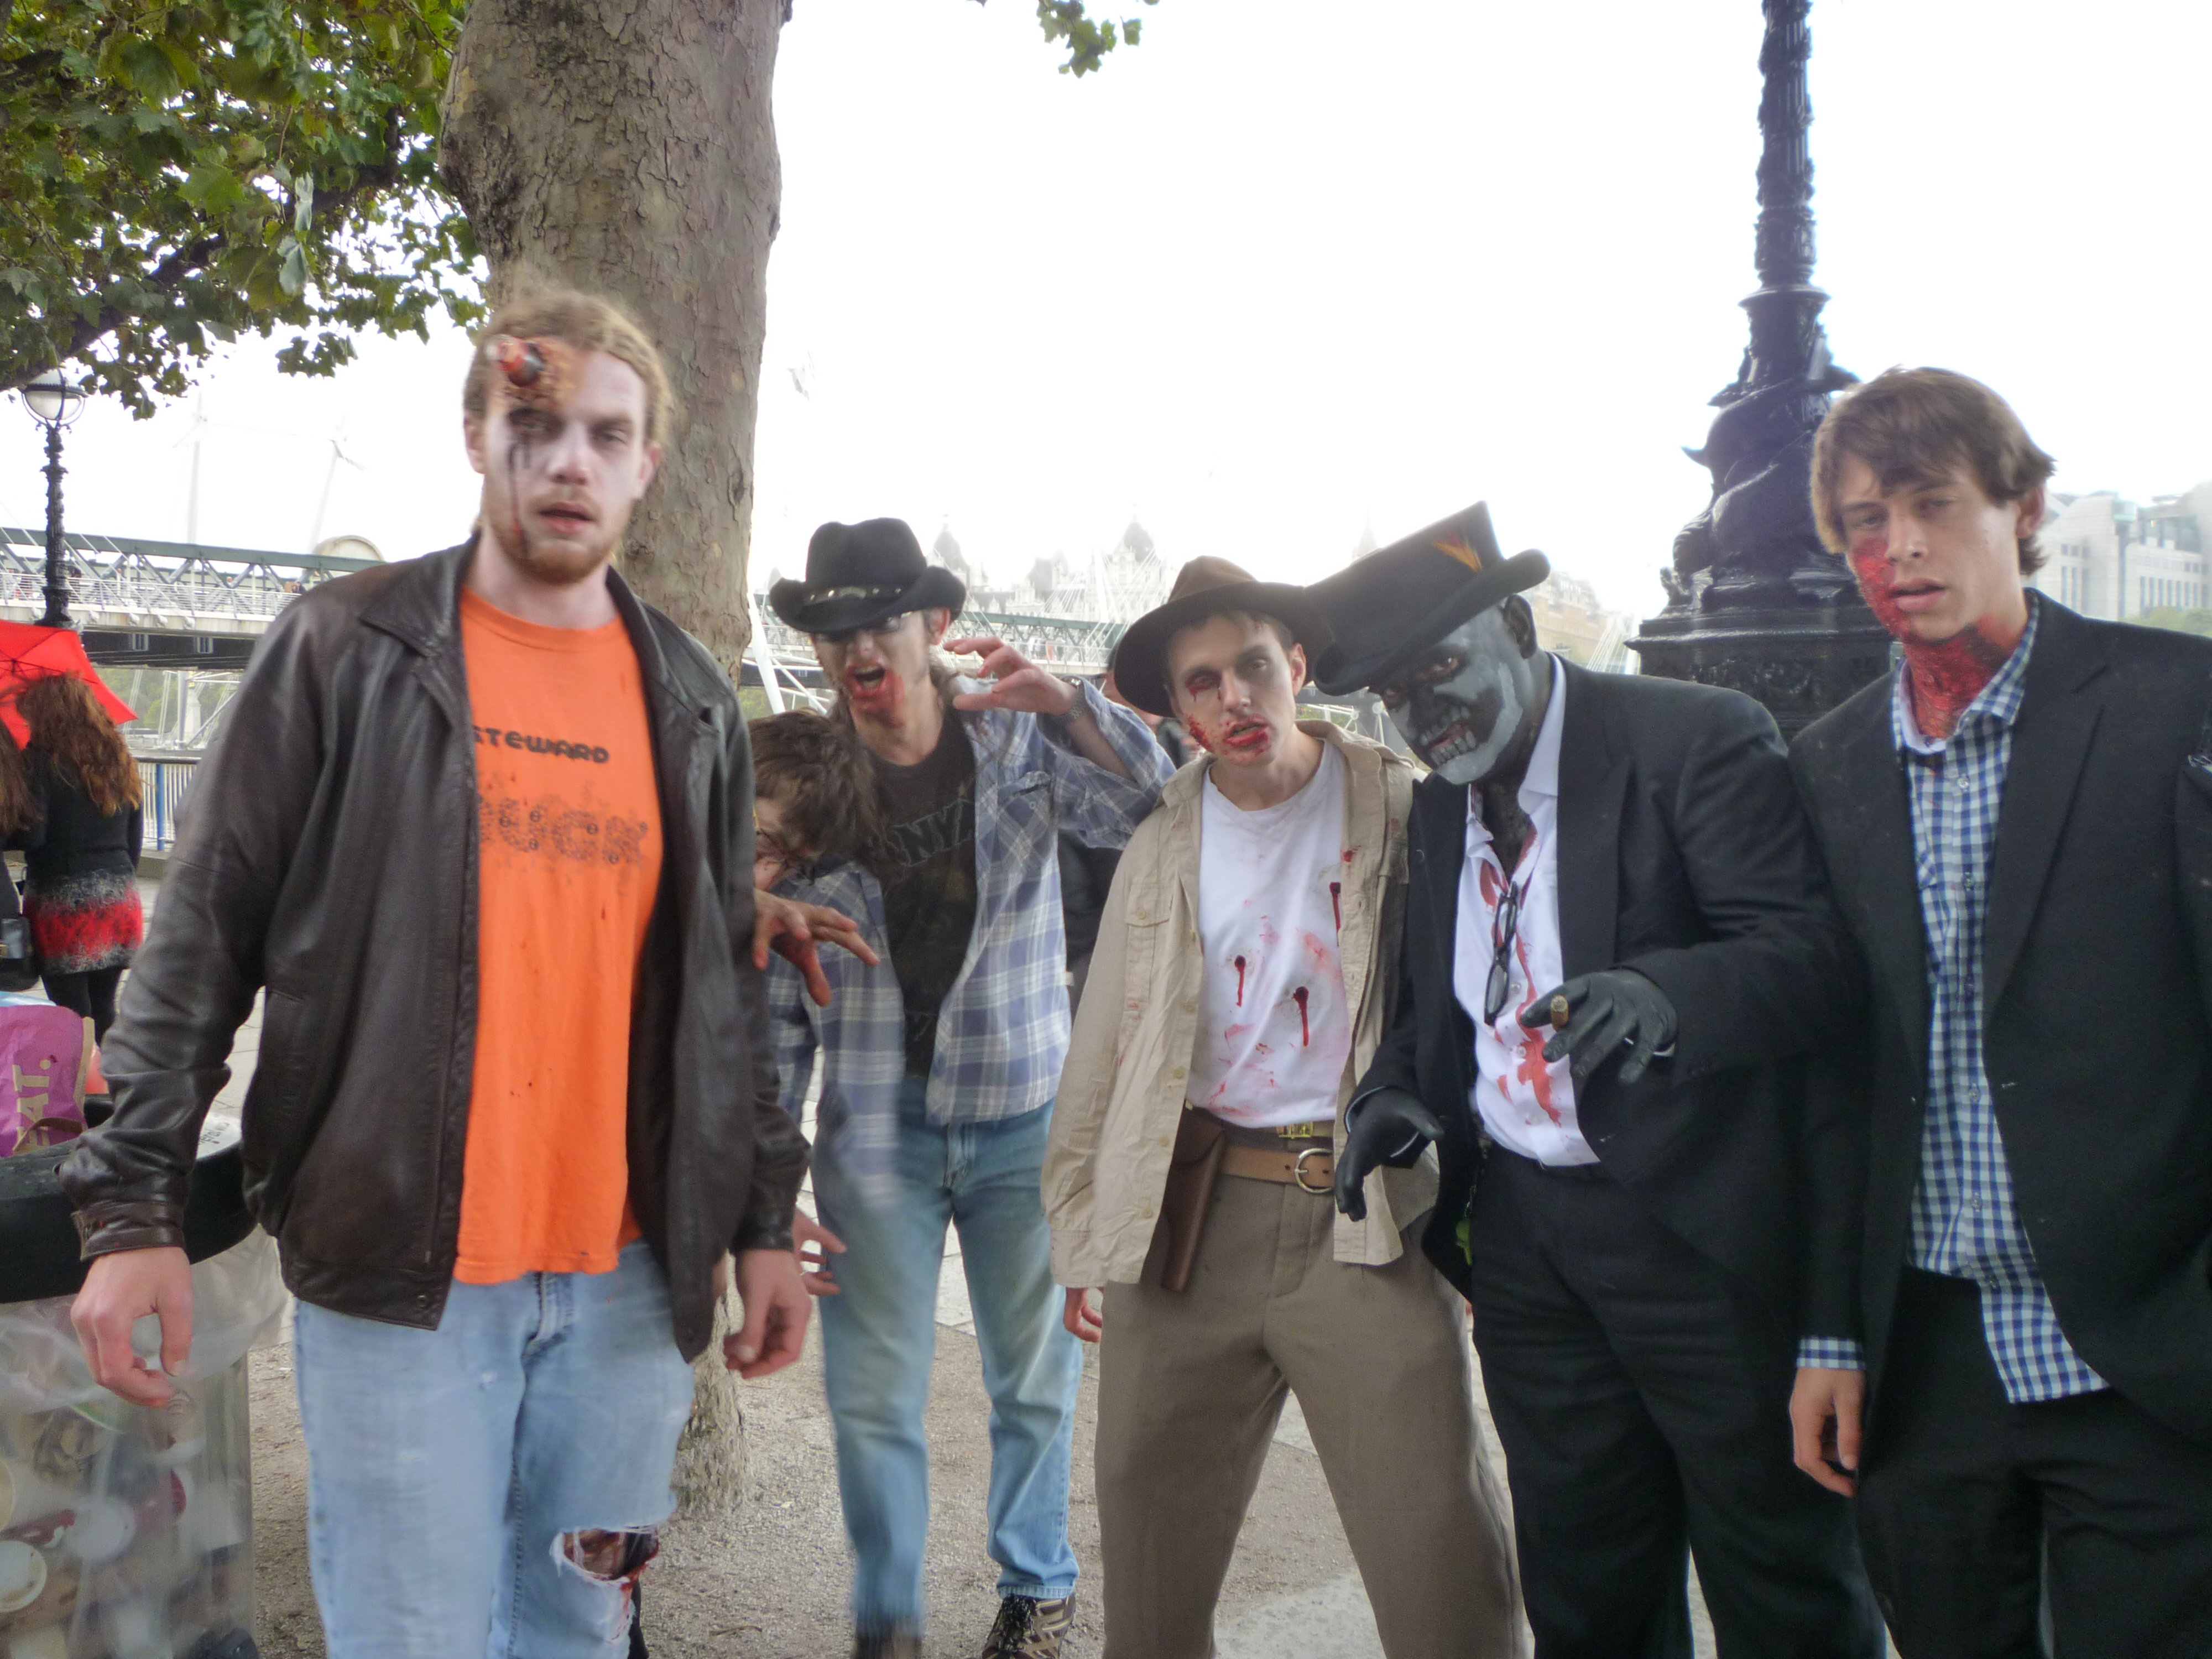 World Zombie Day in London - check the glass on the guy´s head